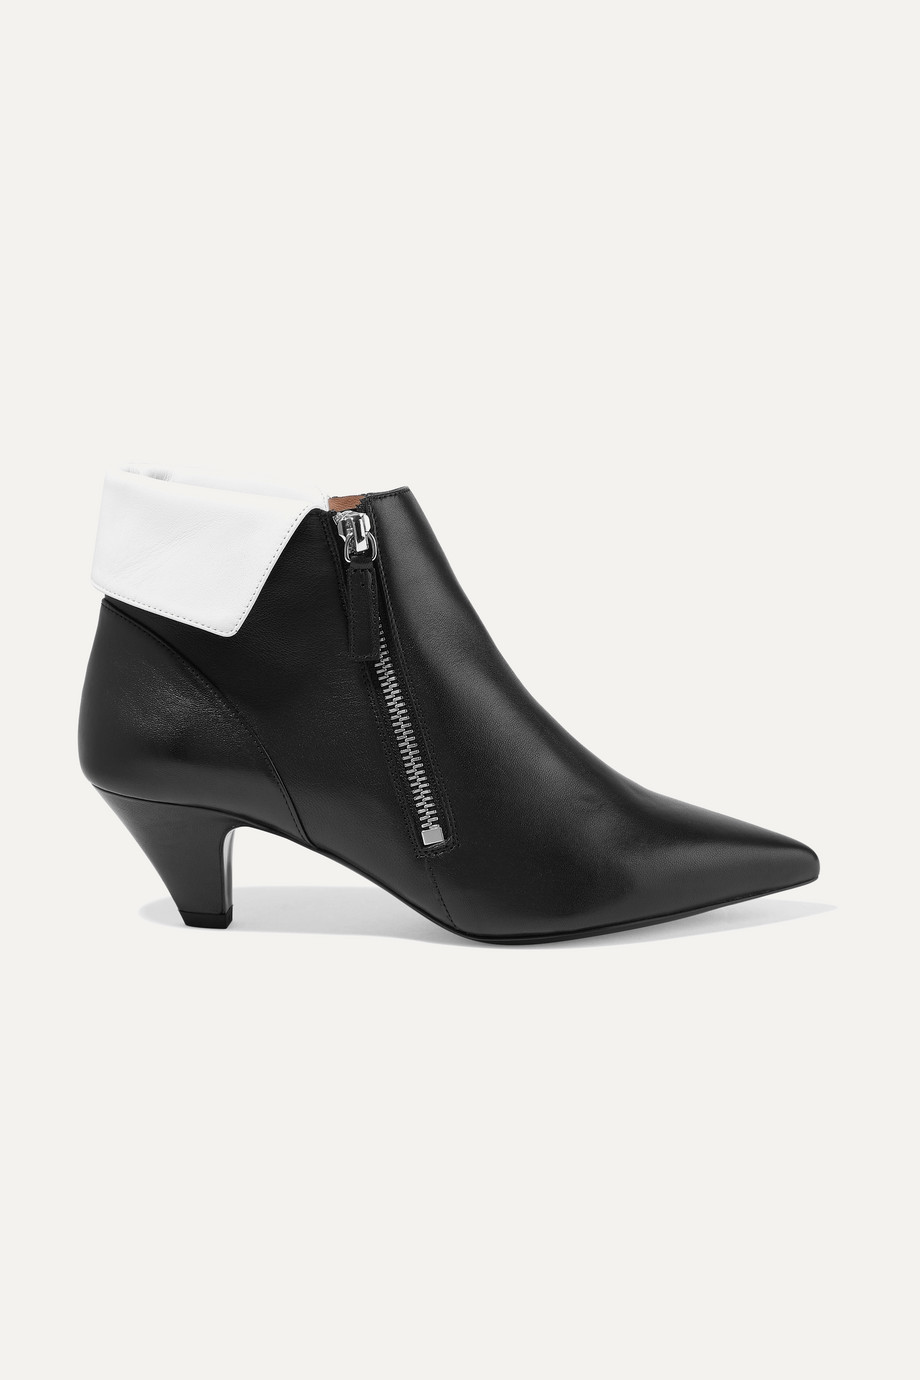 Tabitha Simmons + Equipment Chrissie two-tone leather ankle boots